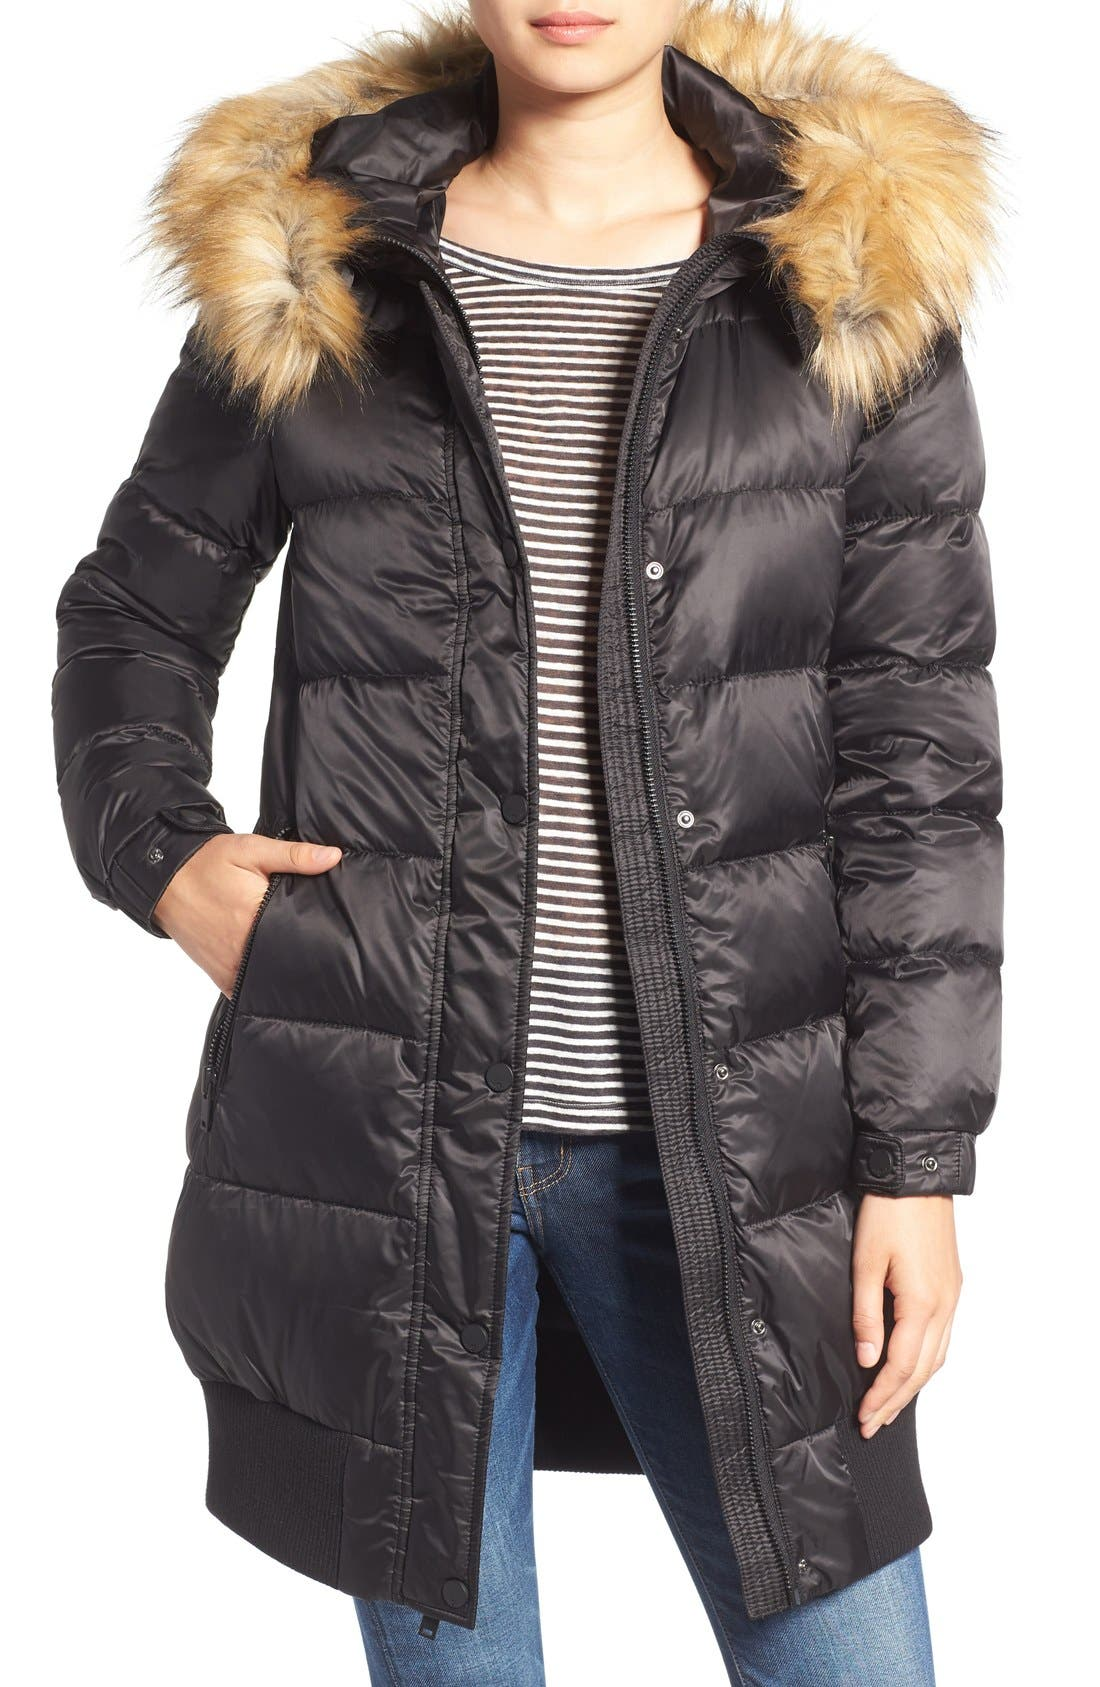 Main Image - 7 For All Mankind Quilted Coat with Removable Faux Fur Trim Hood